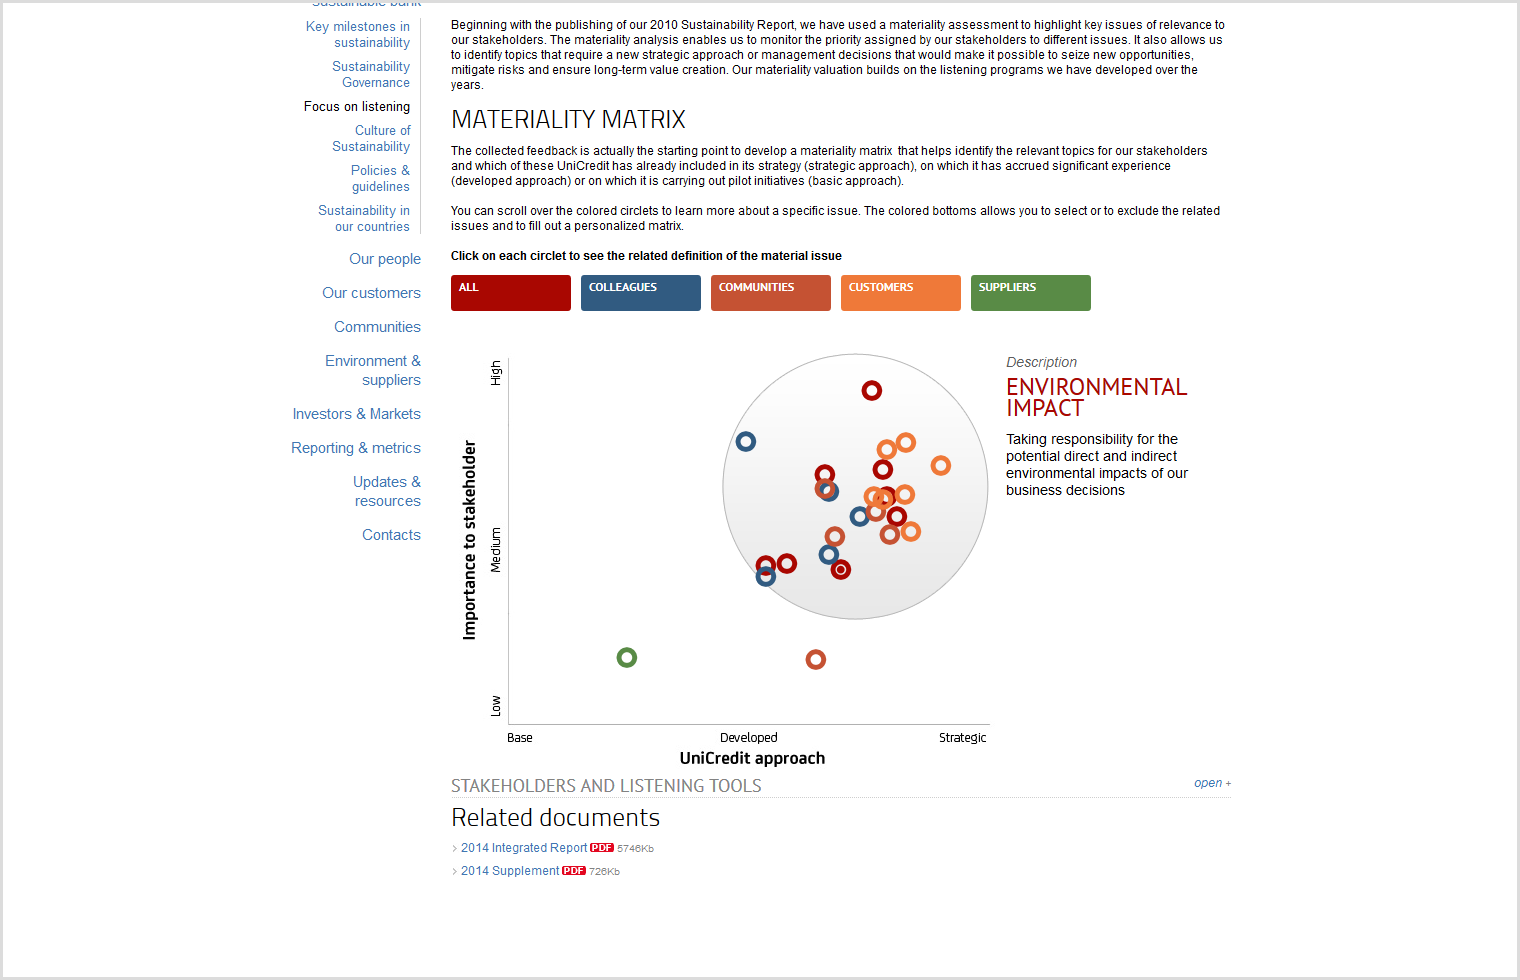 Interactive Materiality Matrix by UniCredit